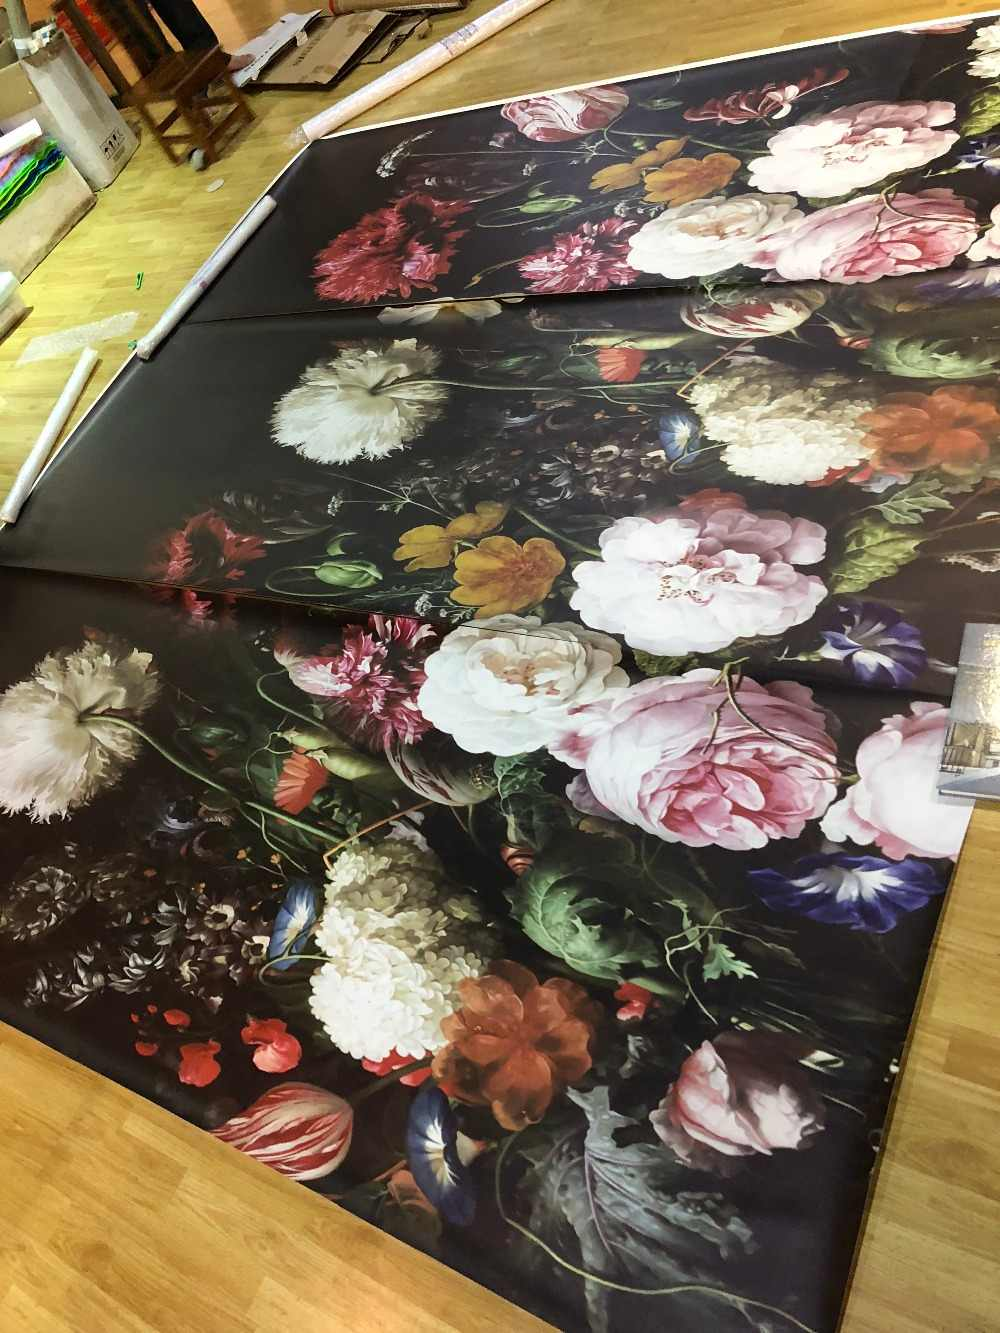 Bacaz Black Bottom Large Papel Murals 3d Rose Flower Wallpaper For Bedroom Sofa Background 3d Photo Murals 3d Flower Stickers